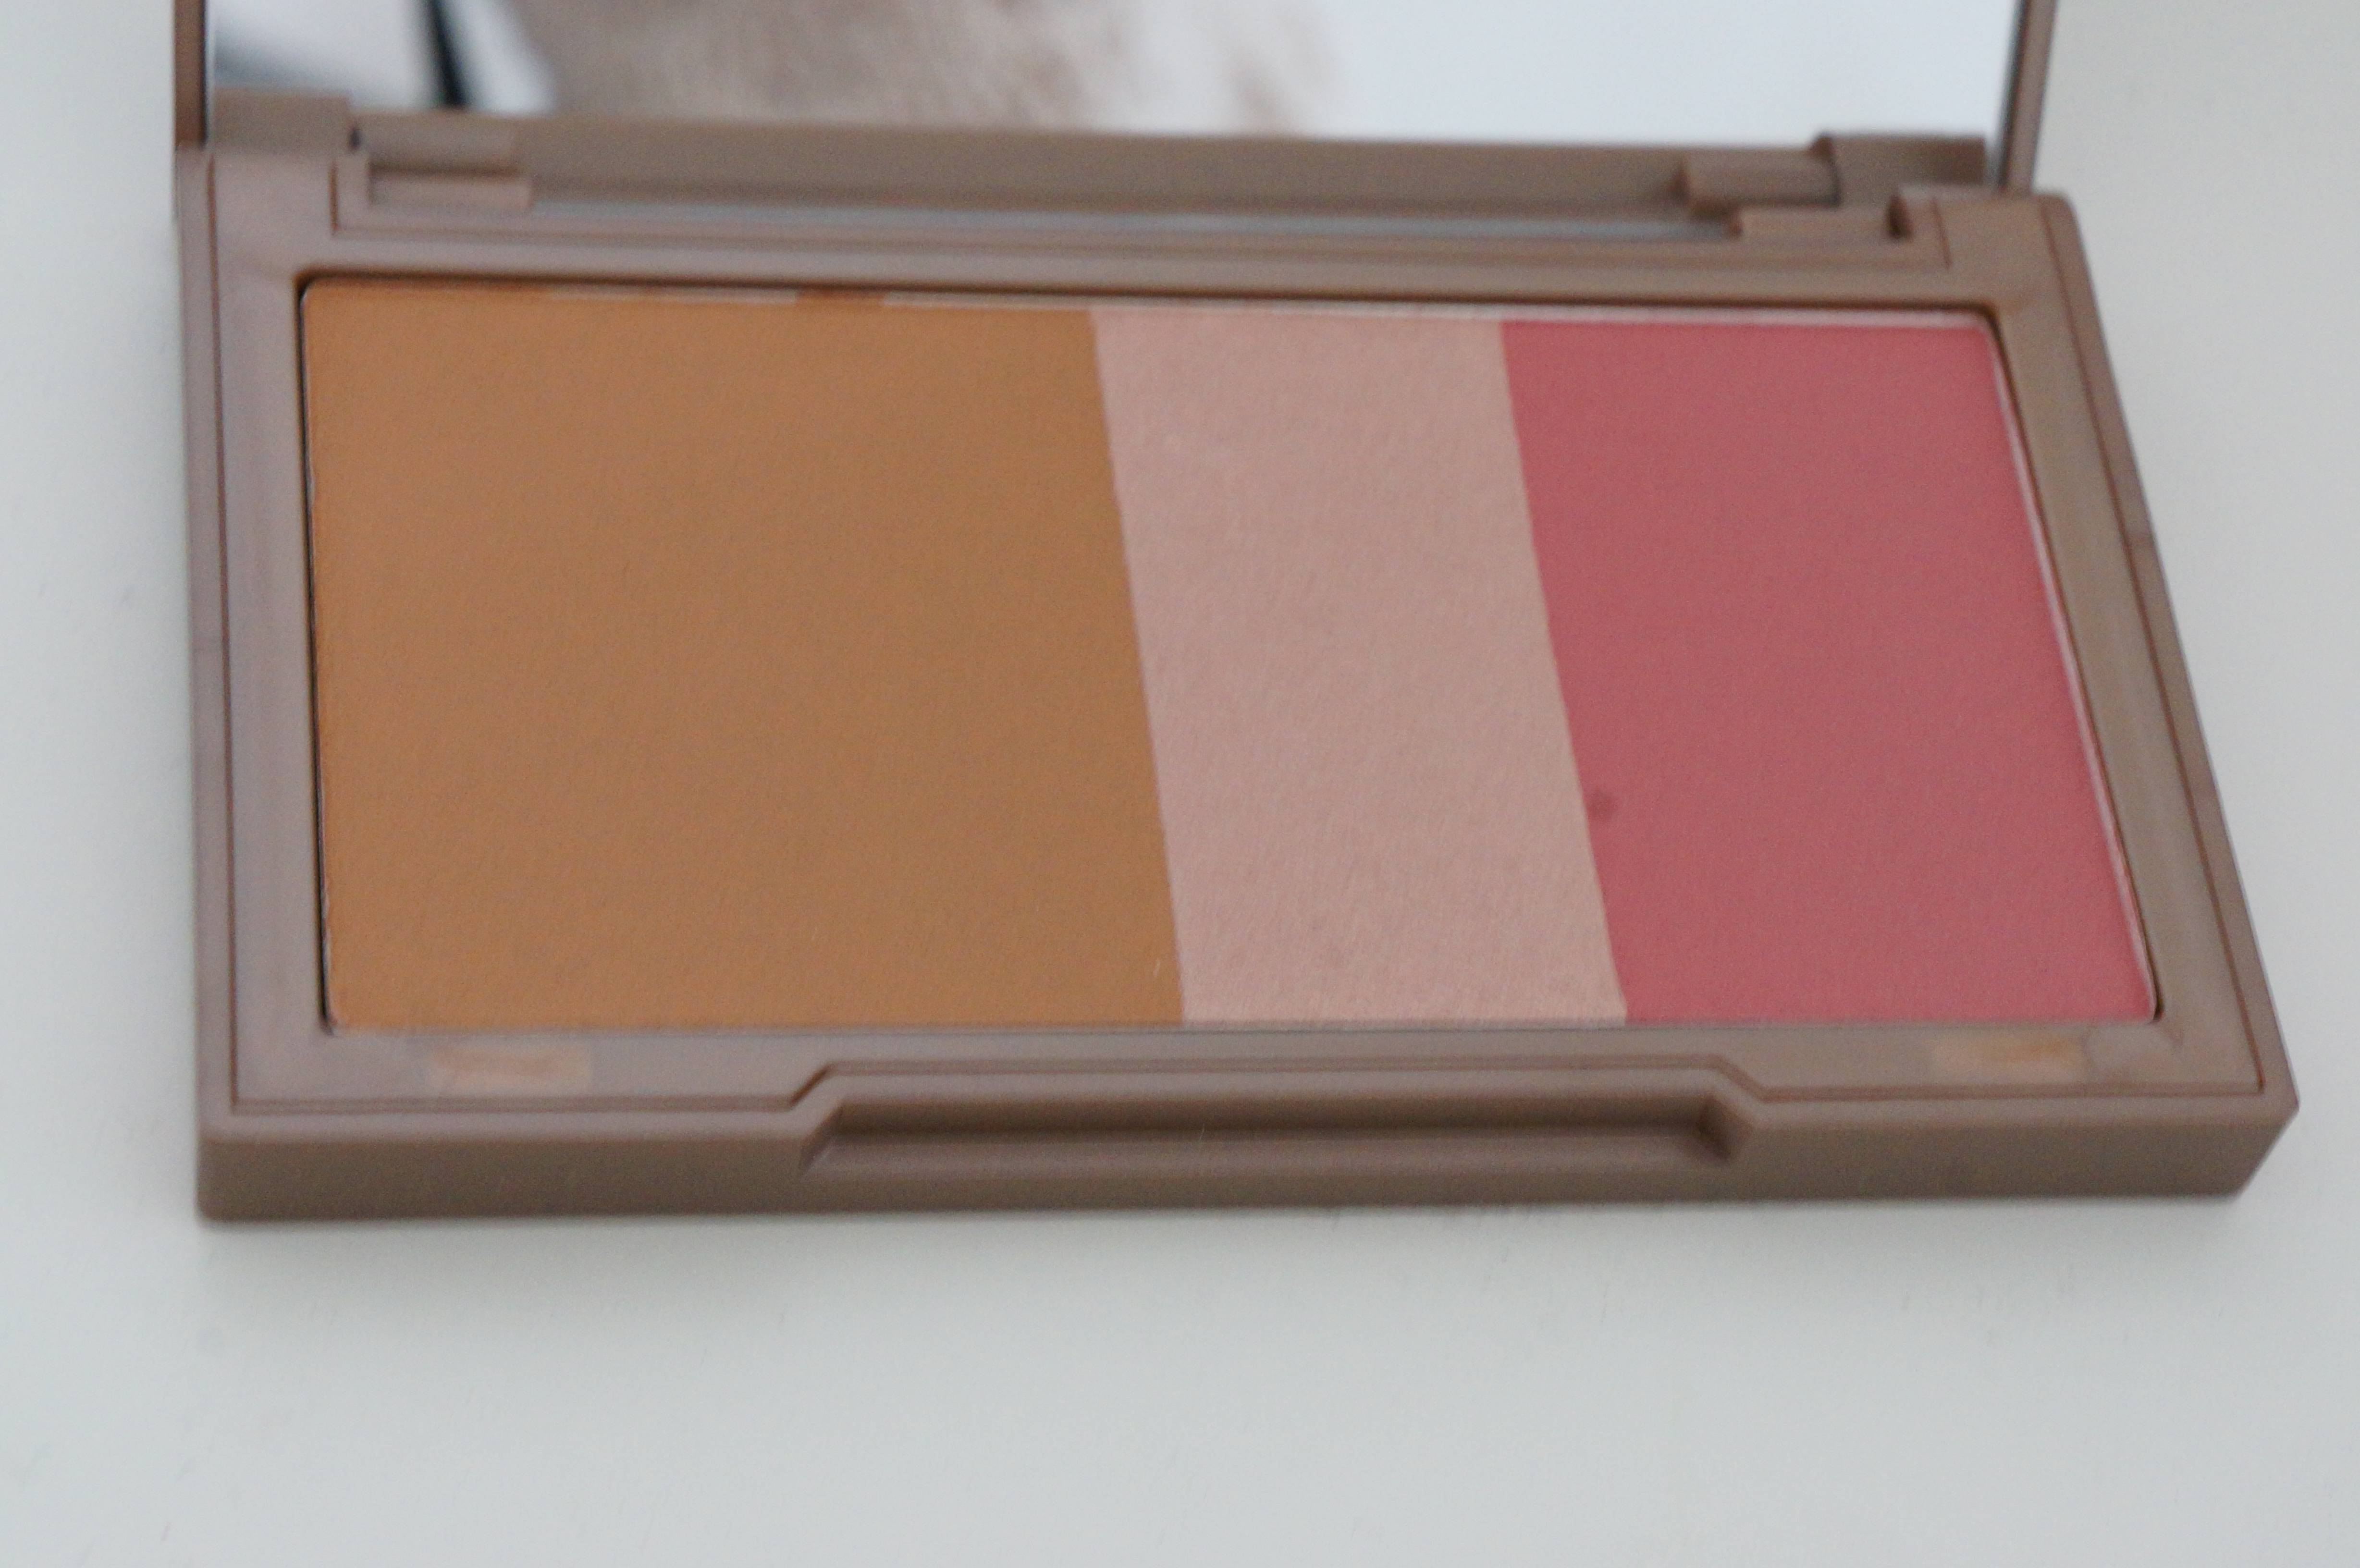 Urban Decay Flushed Palette/ Pic by kiwikoo